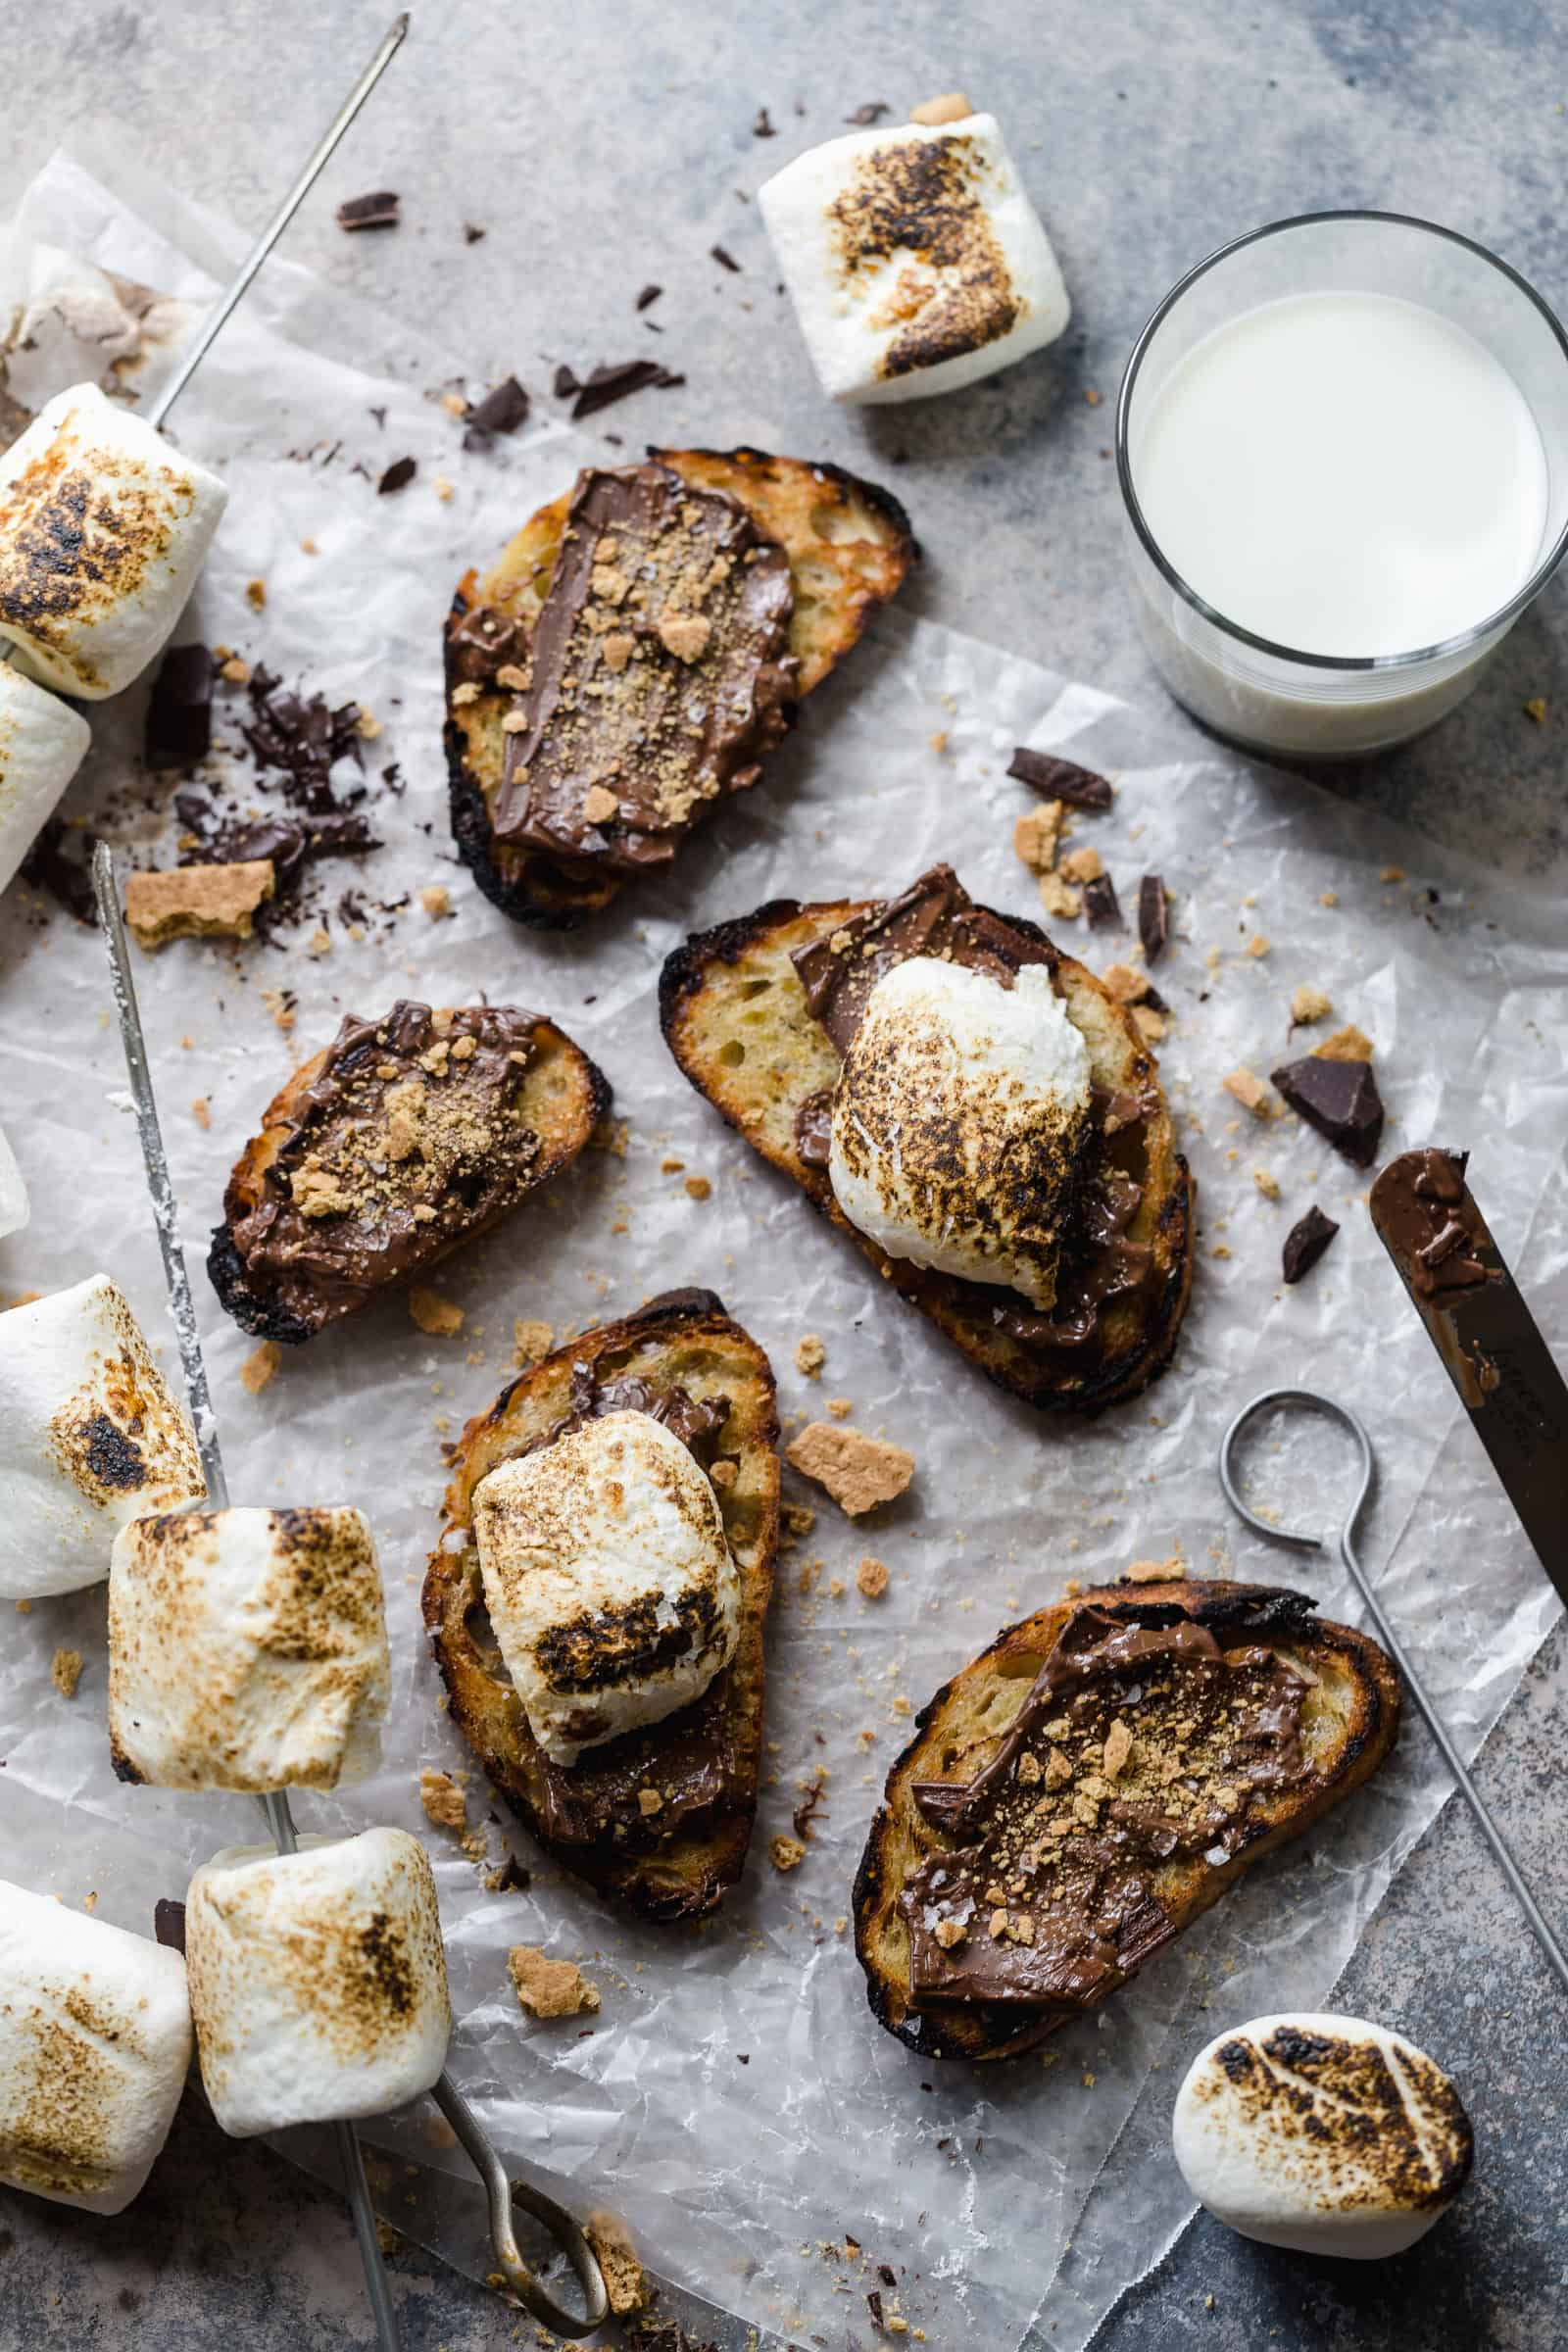 grilled crostini s'mores with sea salt and roasted marshmallows